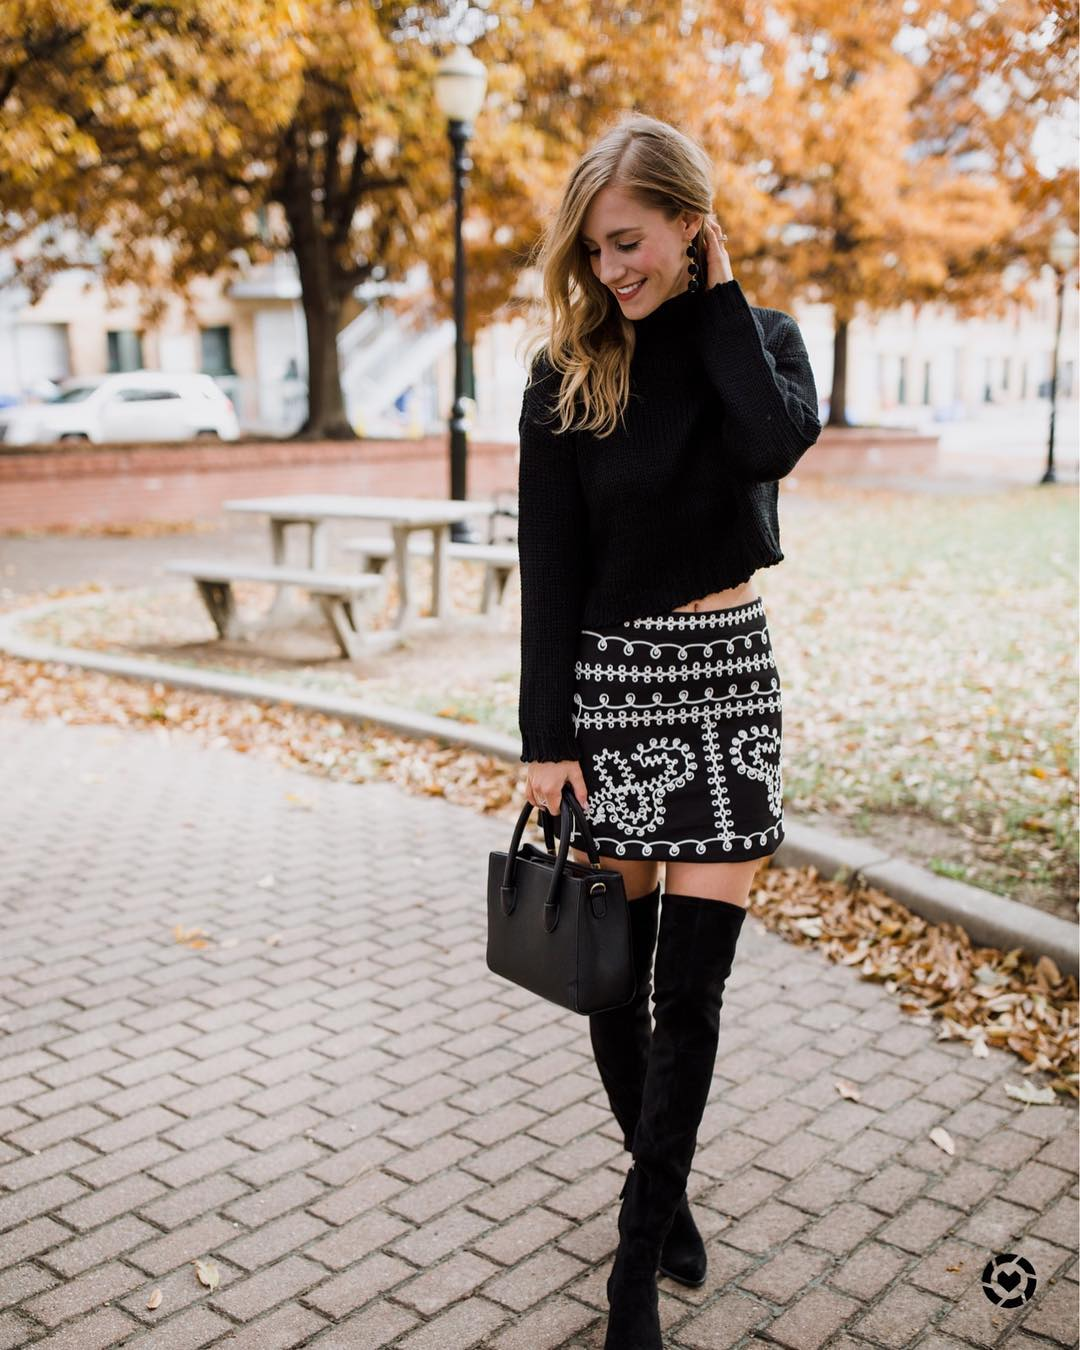 Exclusive Black Plane Cropped Sweater Paired With Printed Short Skirt, Thigh Shoes And Handbag